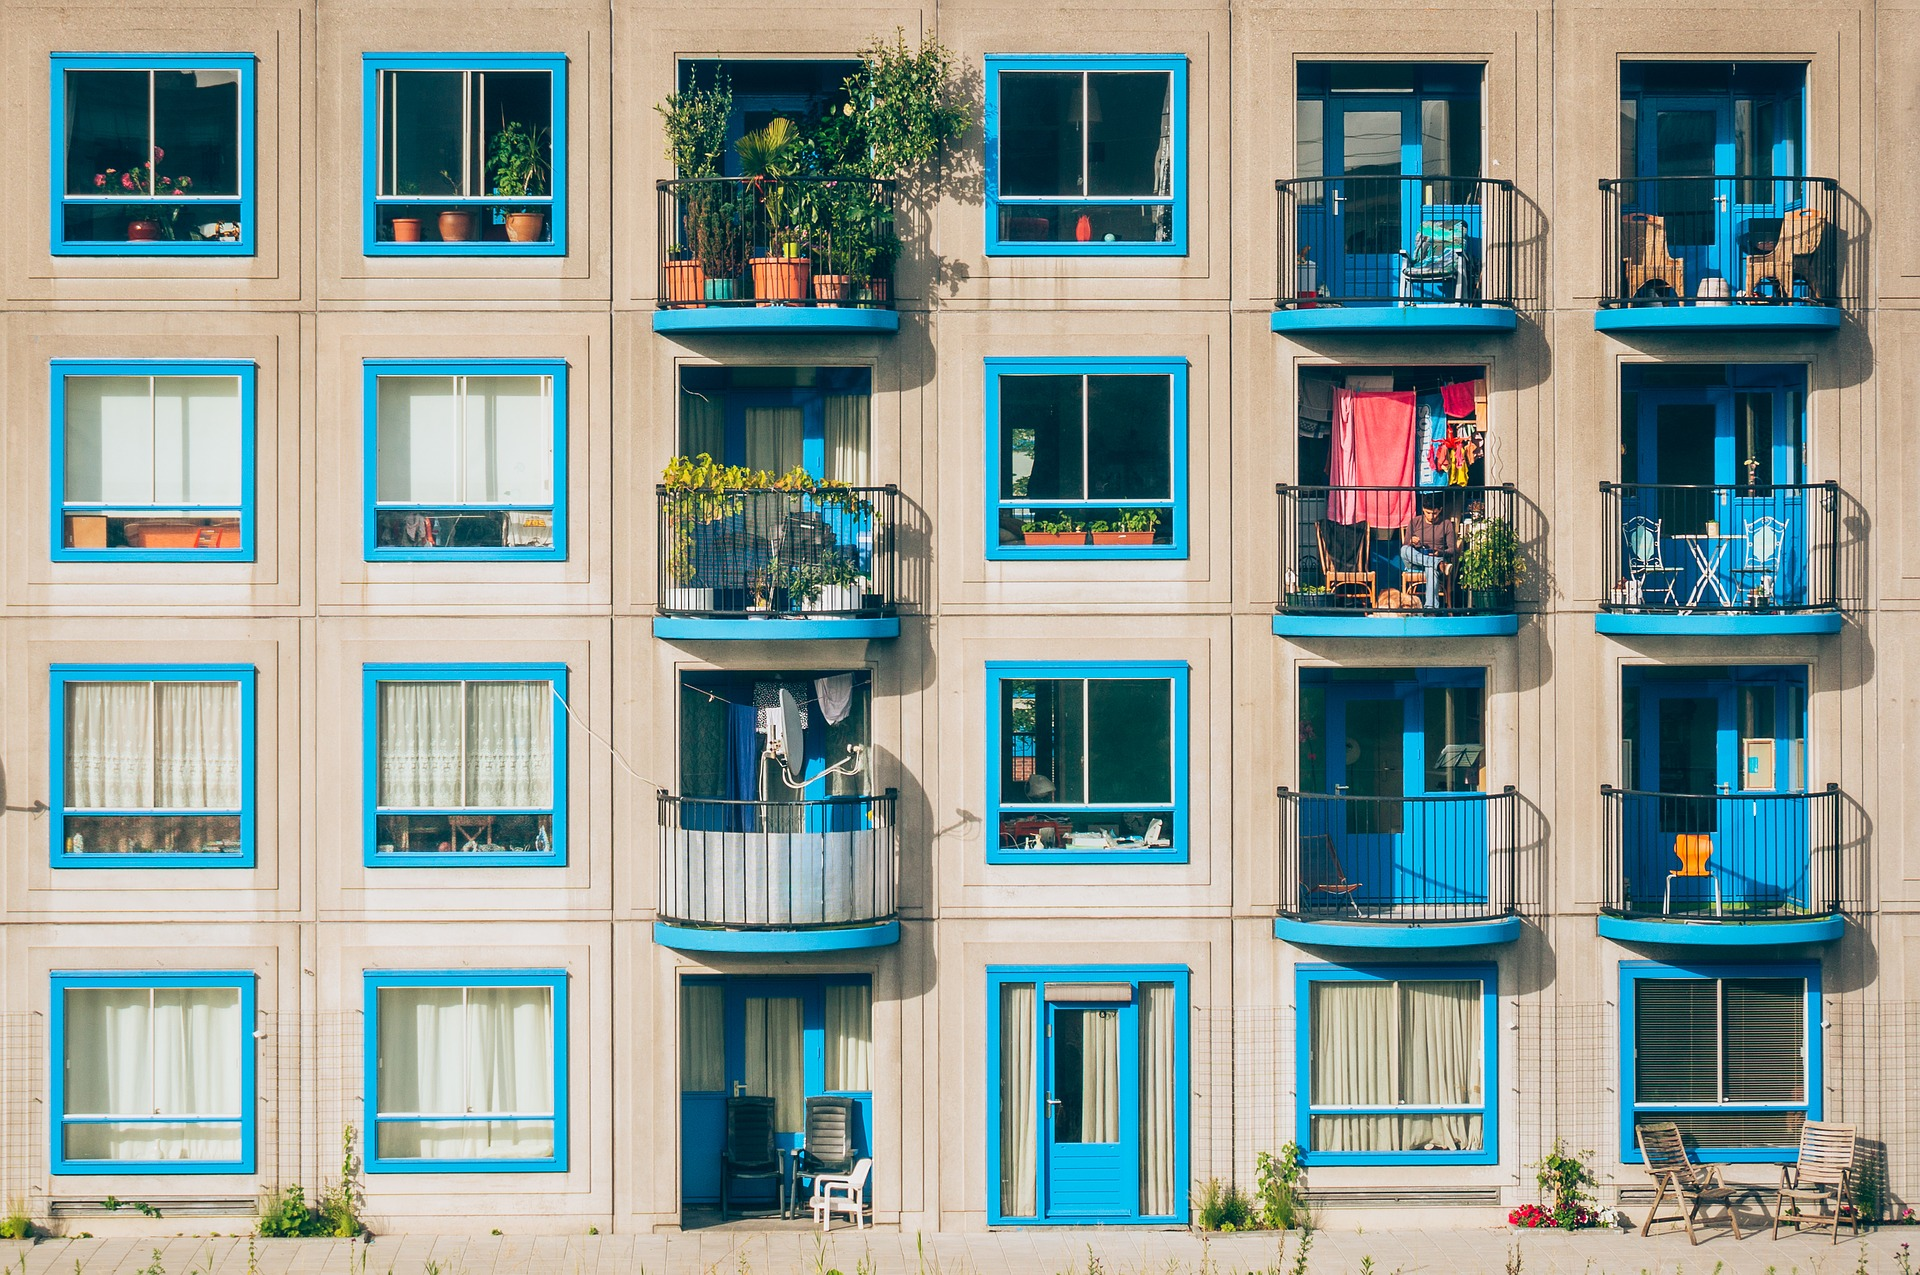 Apartments with blue trim